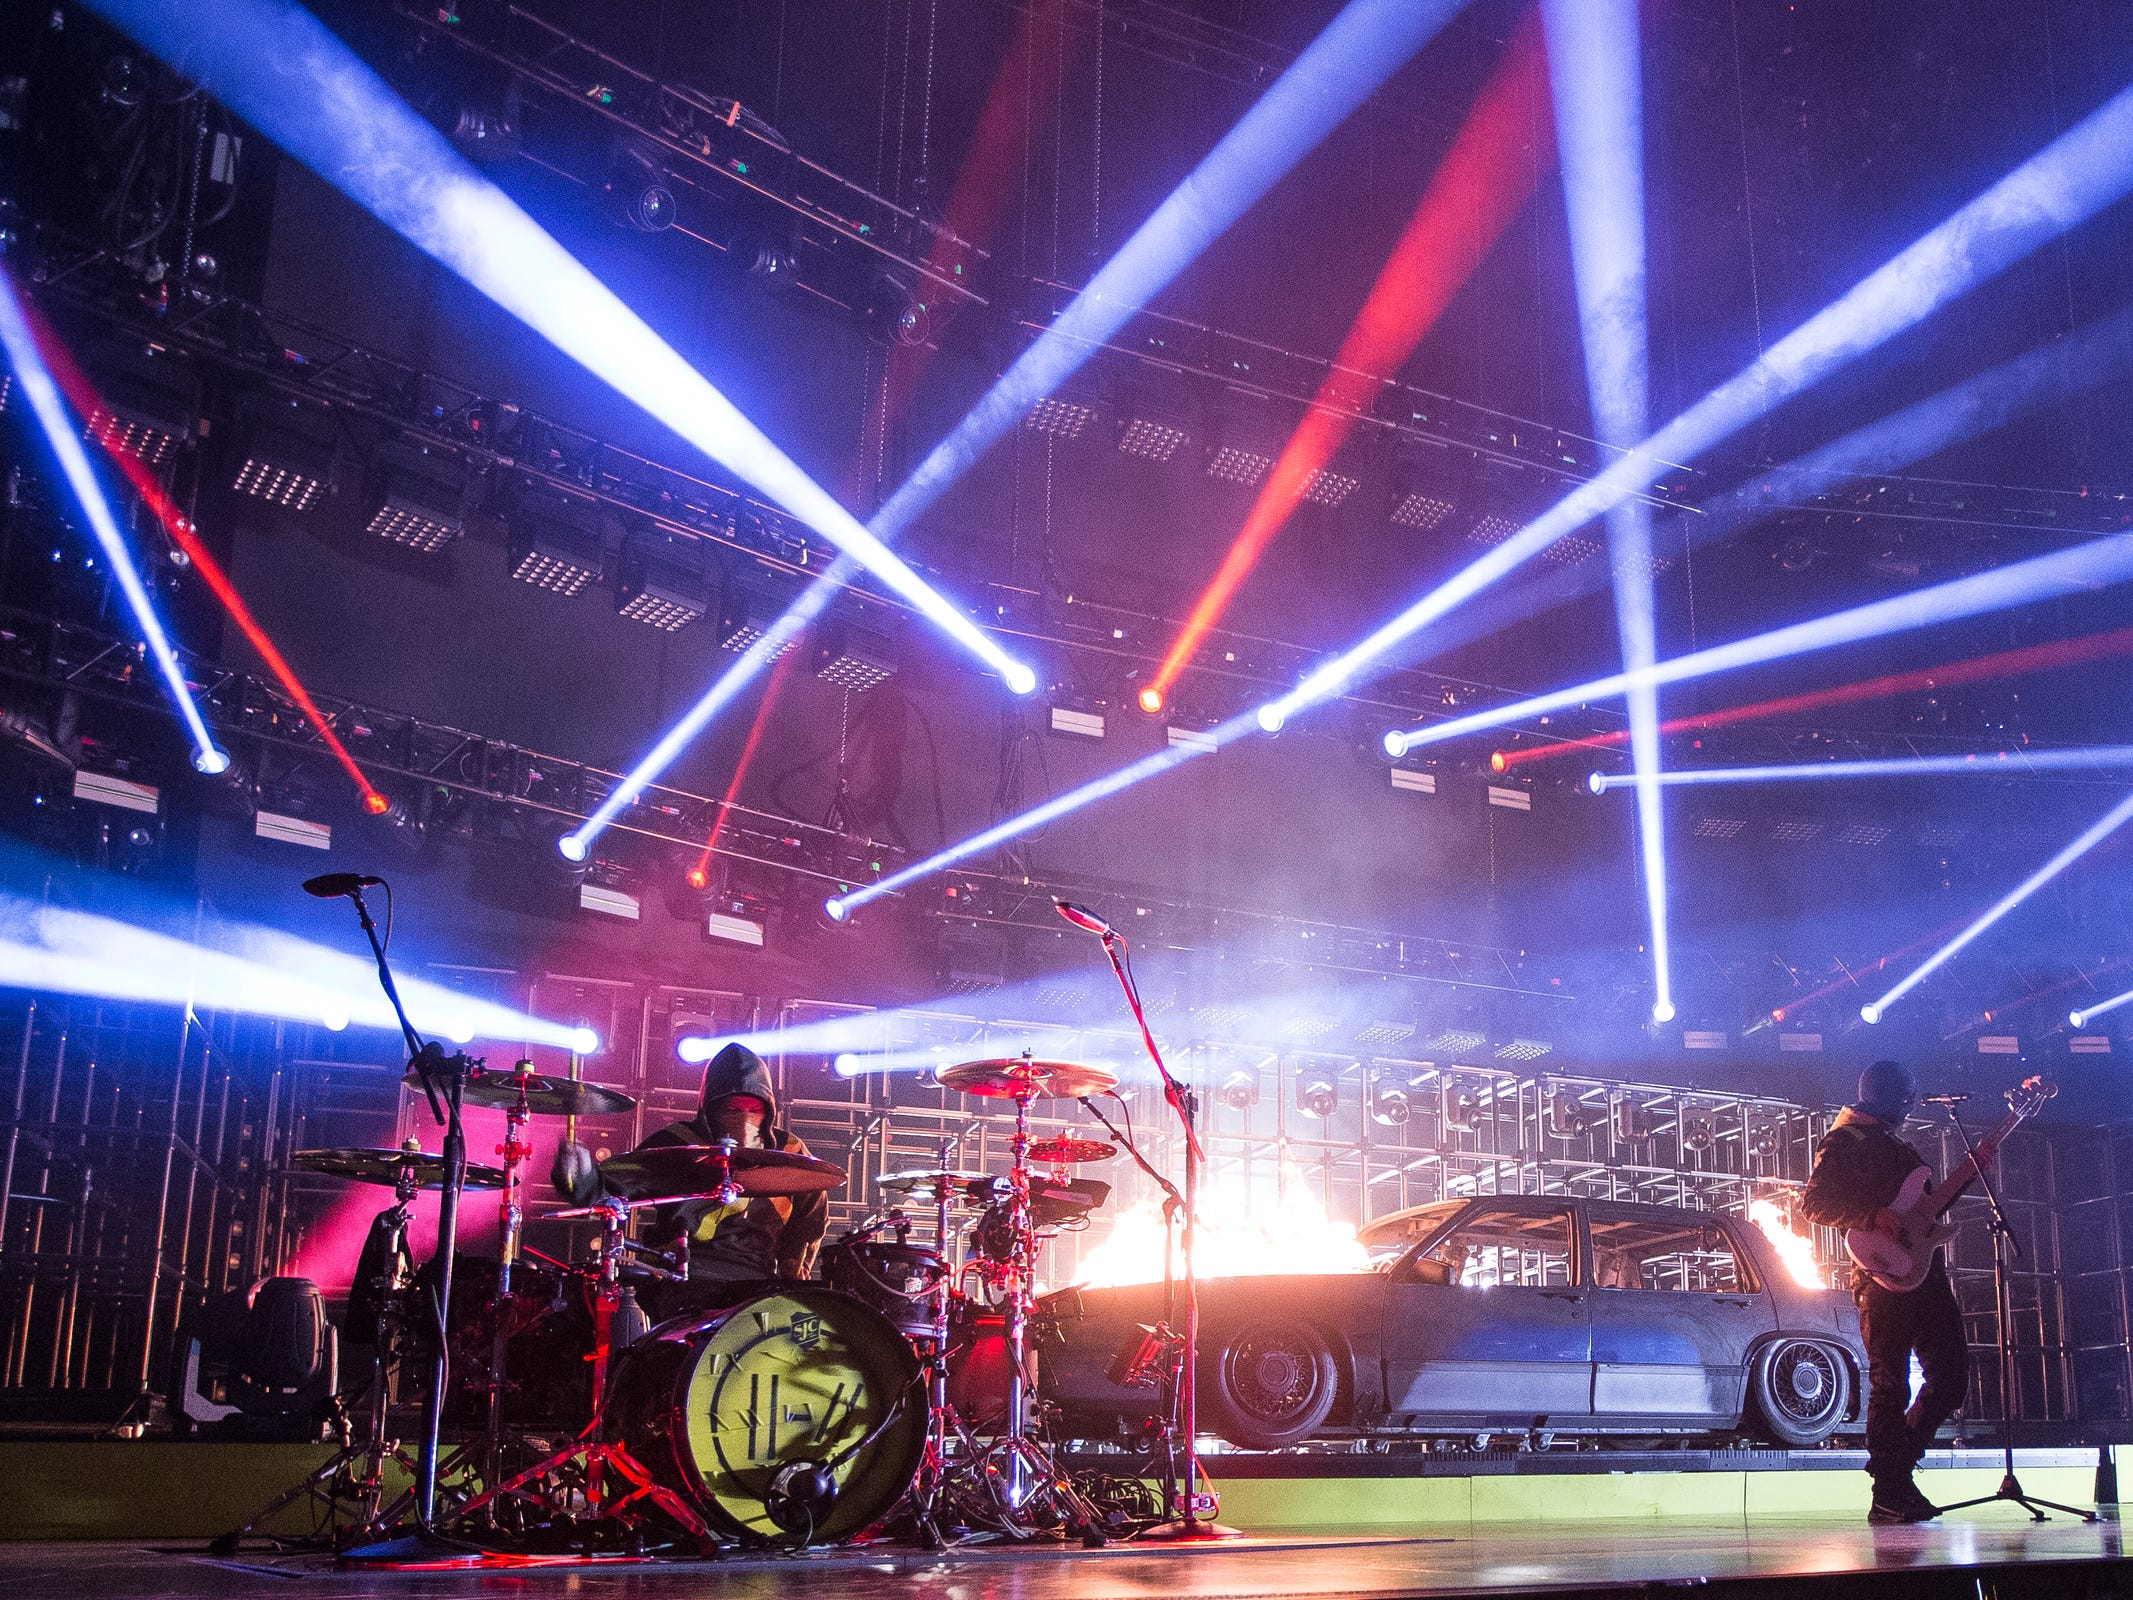 Twenty One Pilots performs during The Bantido Tour at Little Caesars Arena in Detroit, Wednesday, Oct. 24, 2018.